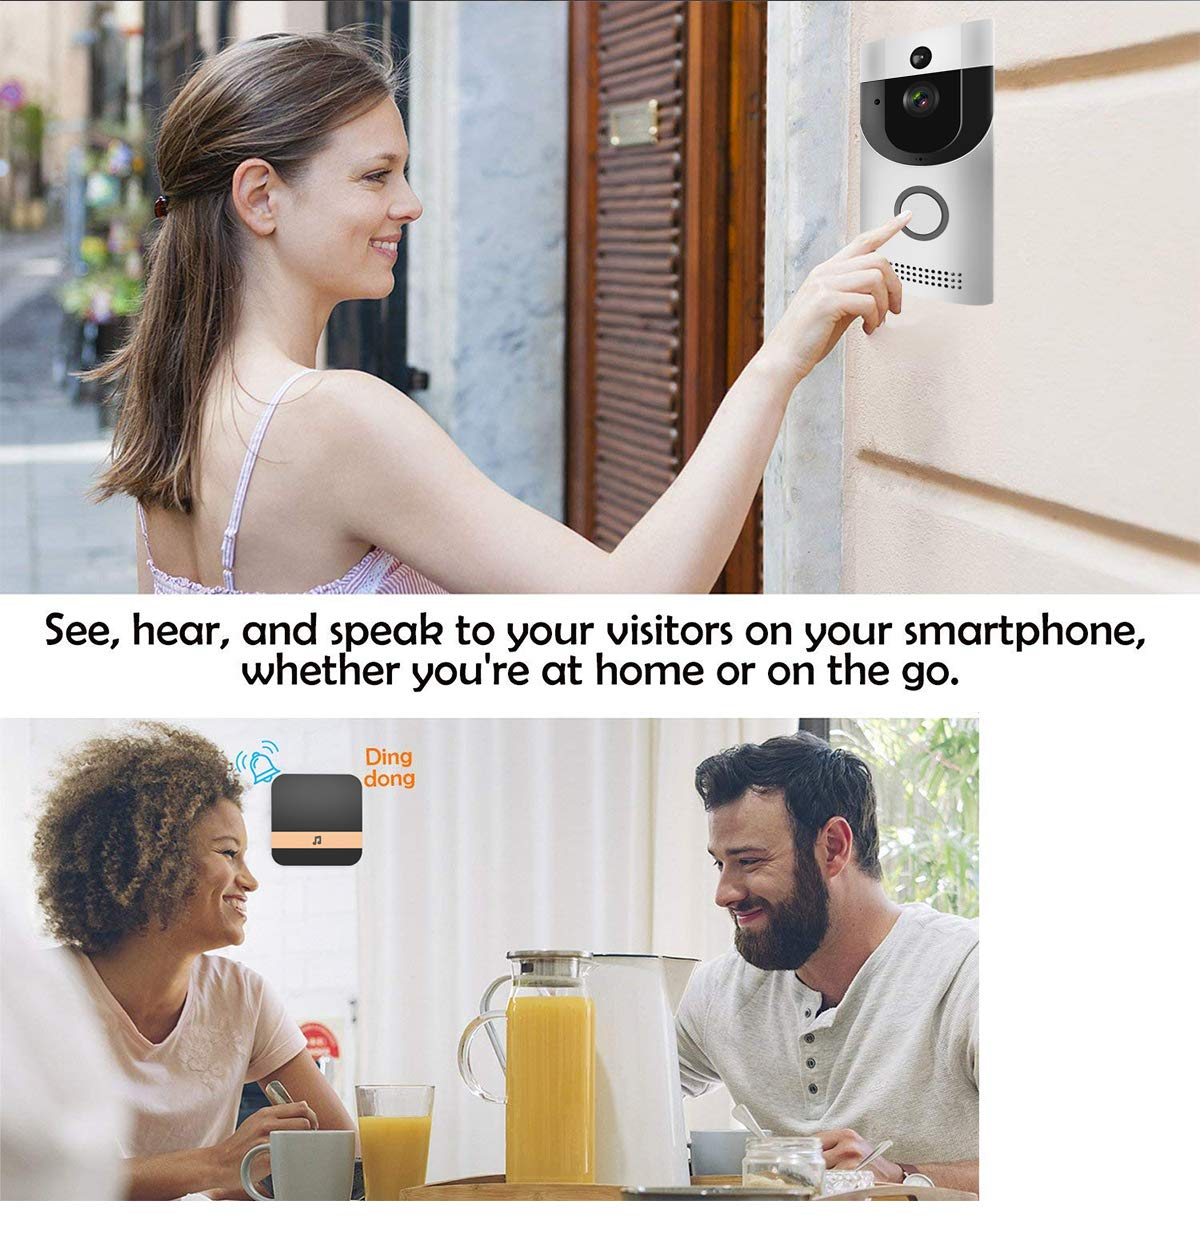 WIFI Video Doorbell, Smart Doorbell HD Security Camera with Chime, Real-Time Two-Way Talk and Video, Night Vision, PIR Motion Detection, ultra-slim design and App Control for IOS and An (Silver) by KLORNO (Image #4)